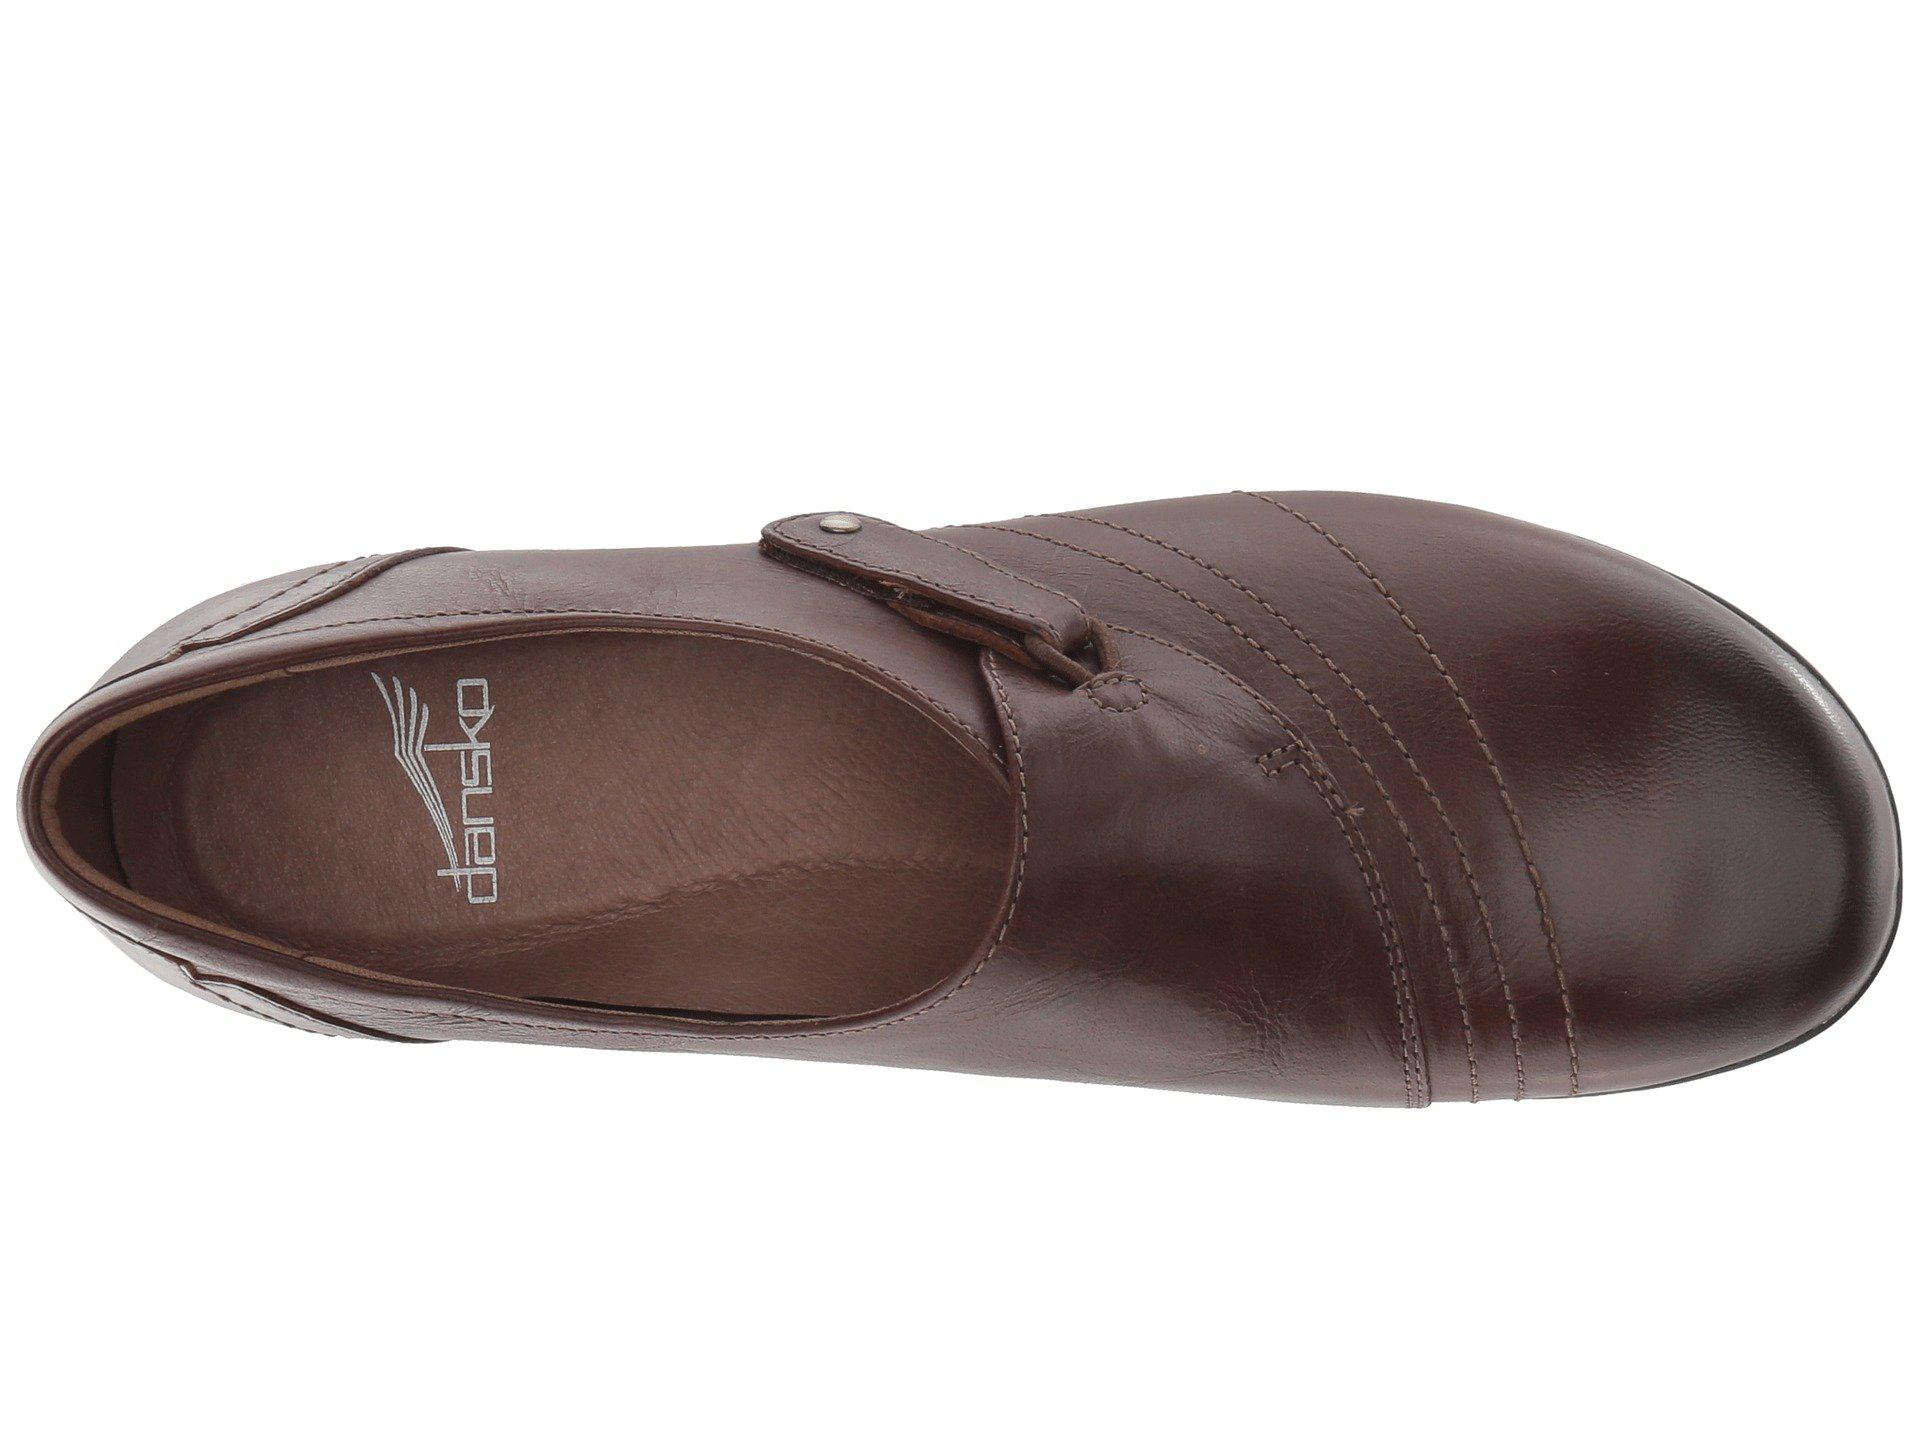 9a6c04a426c Dansko - Brown Franny (chocolate Burnished Calf) Women s Shoes - Lyst. View  fullscreen